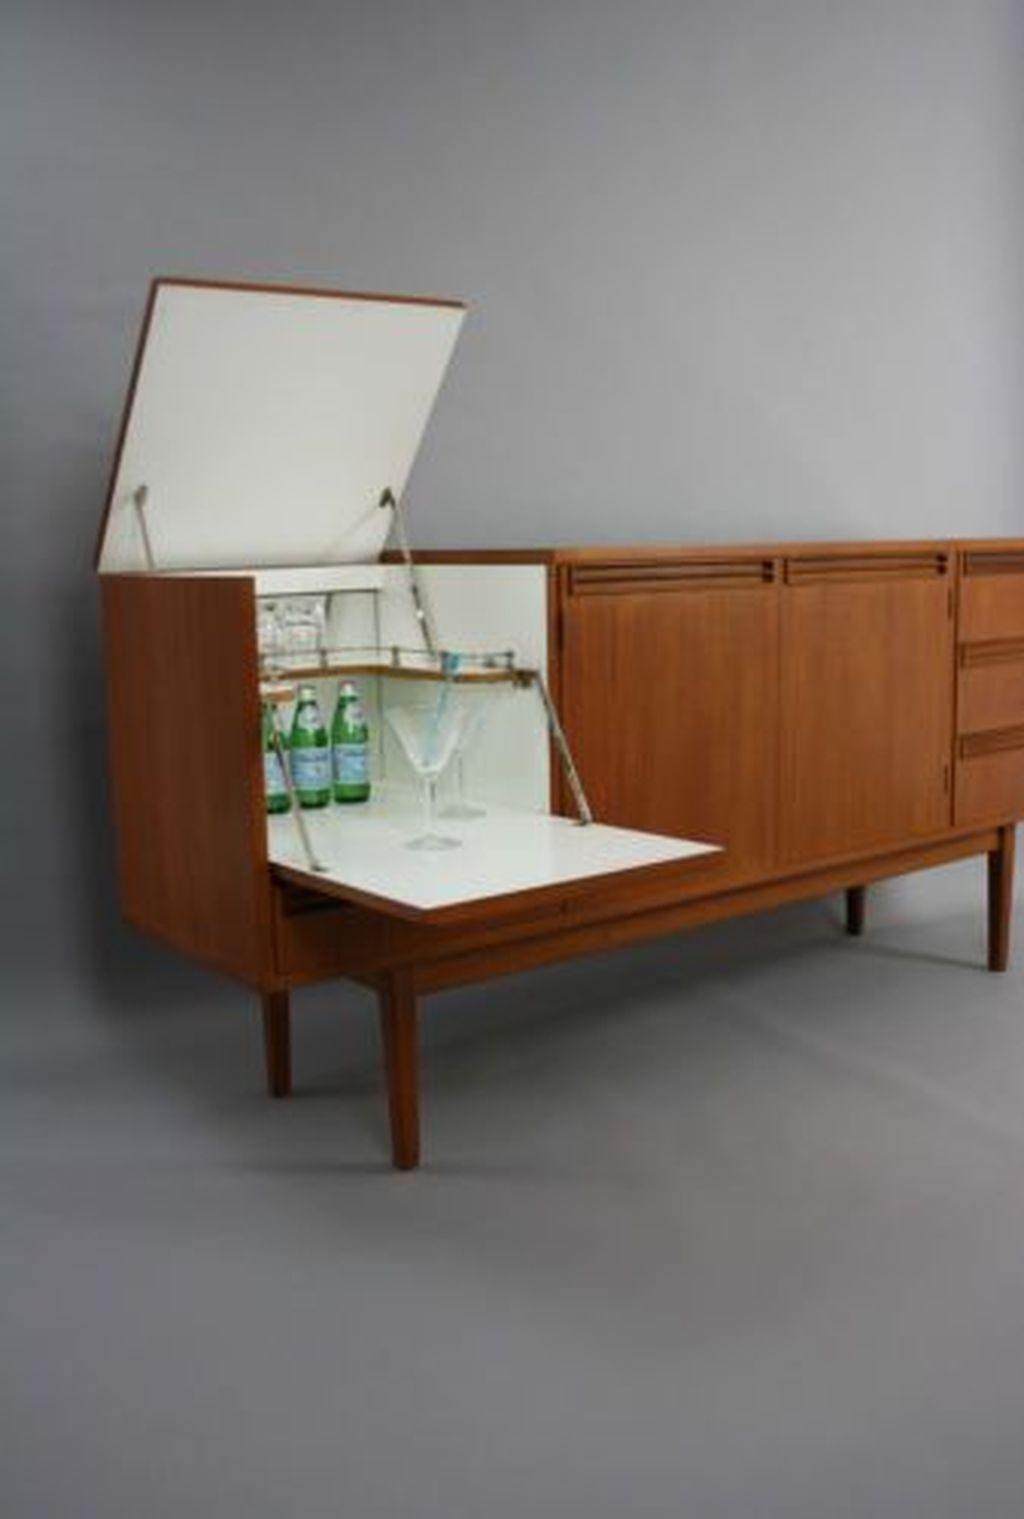 Stunning Sideboard Cocktail Cabinet Bar Drawers Vintage Retro Danish Parker Era